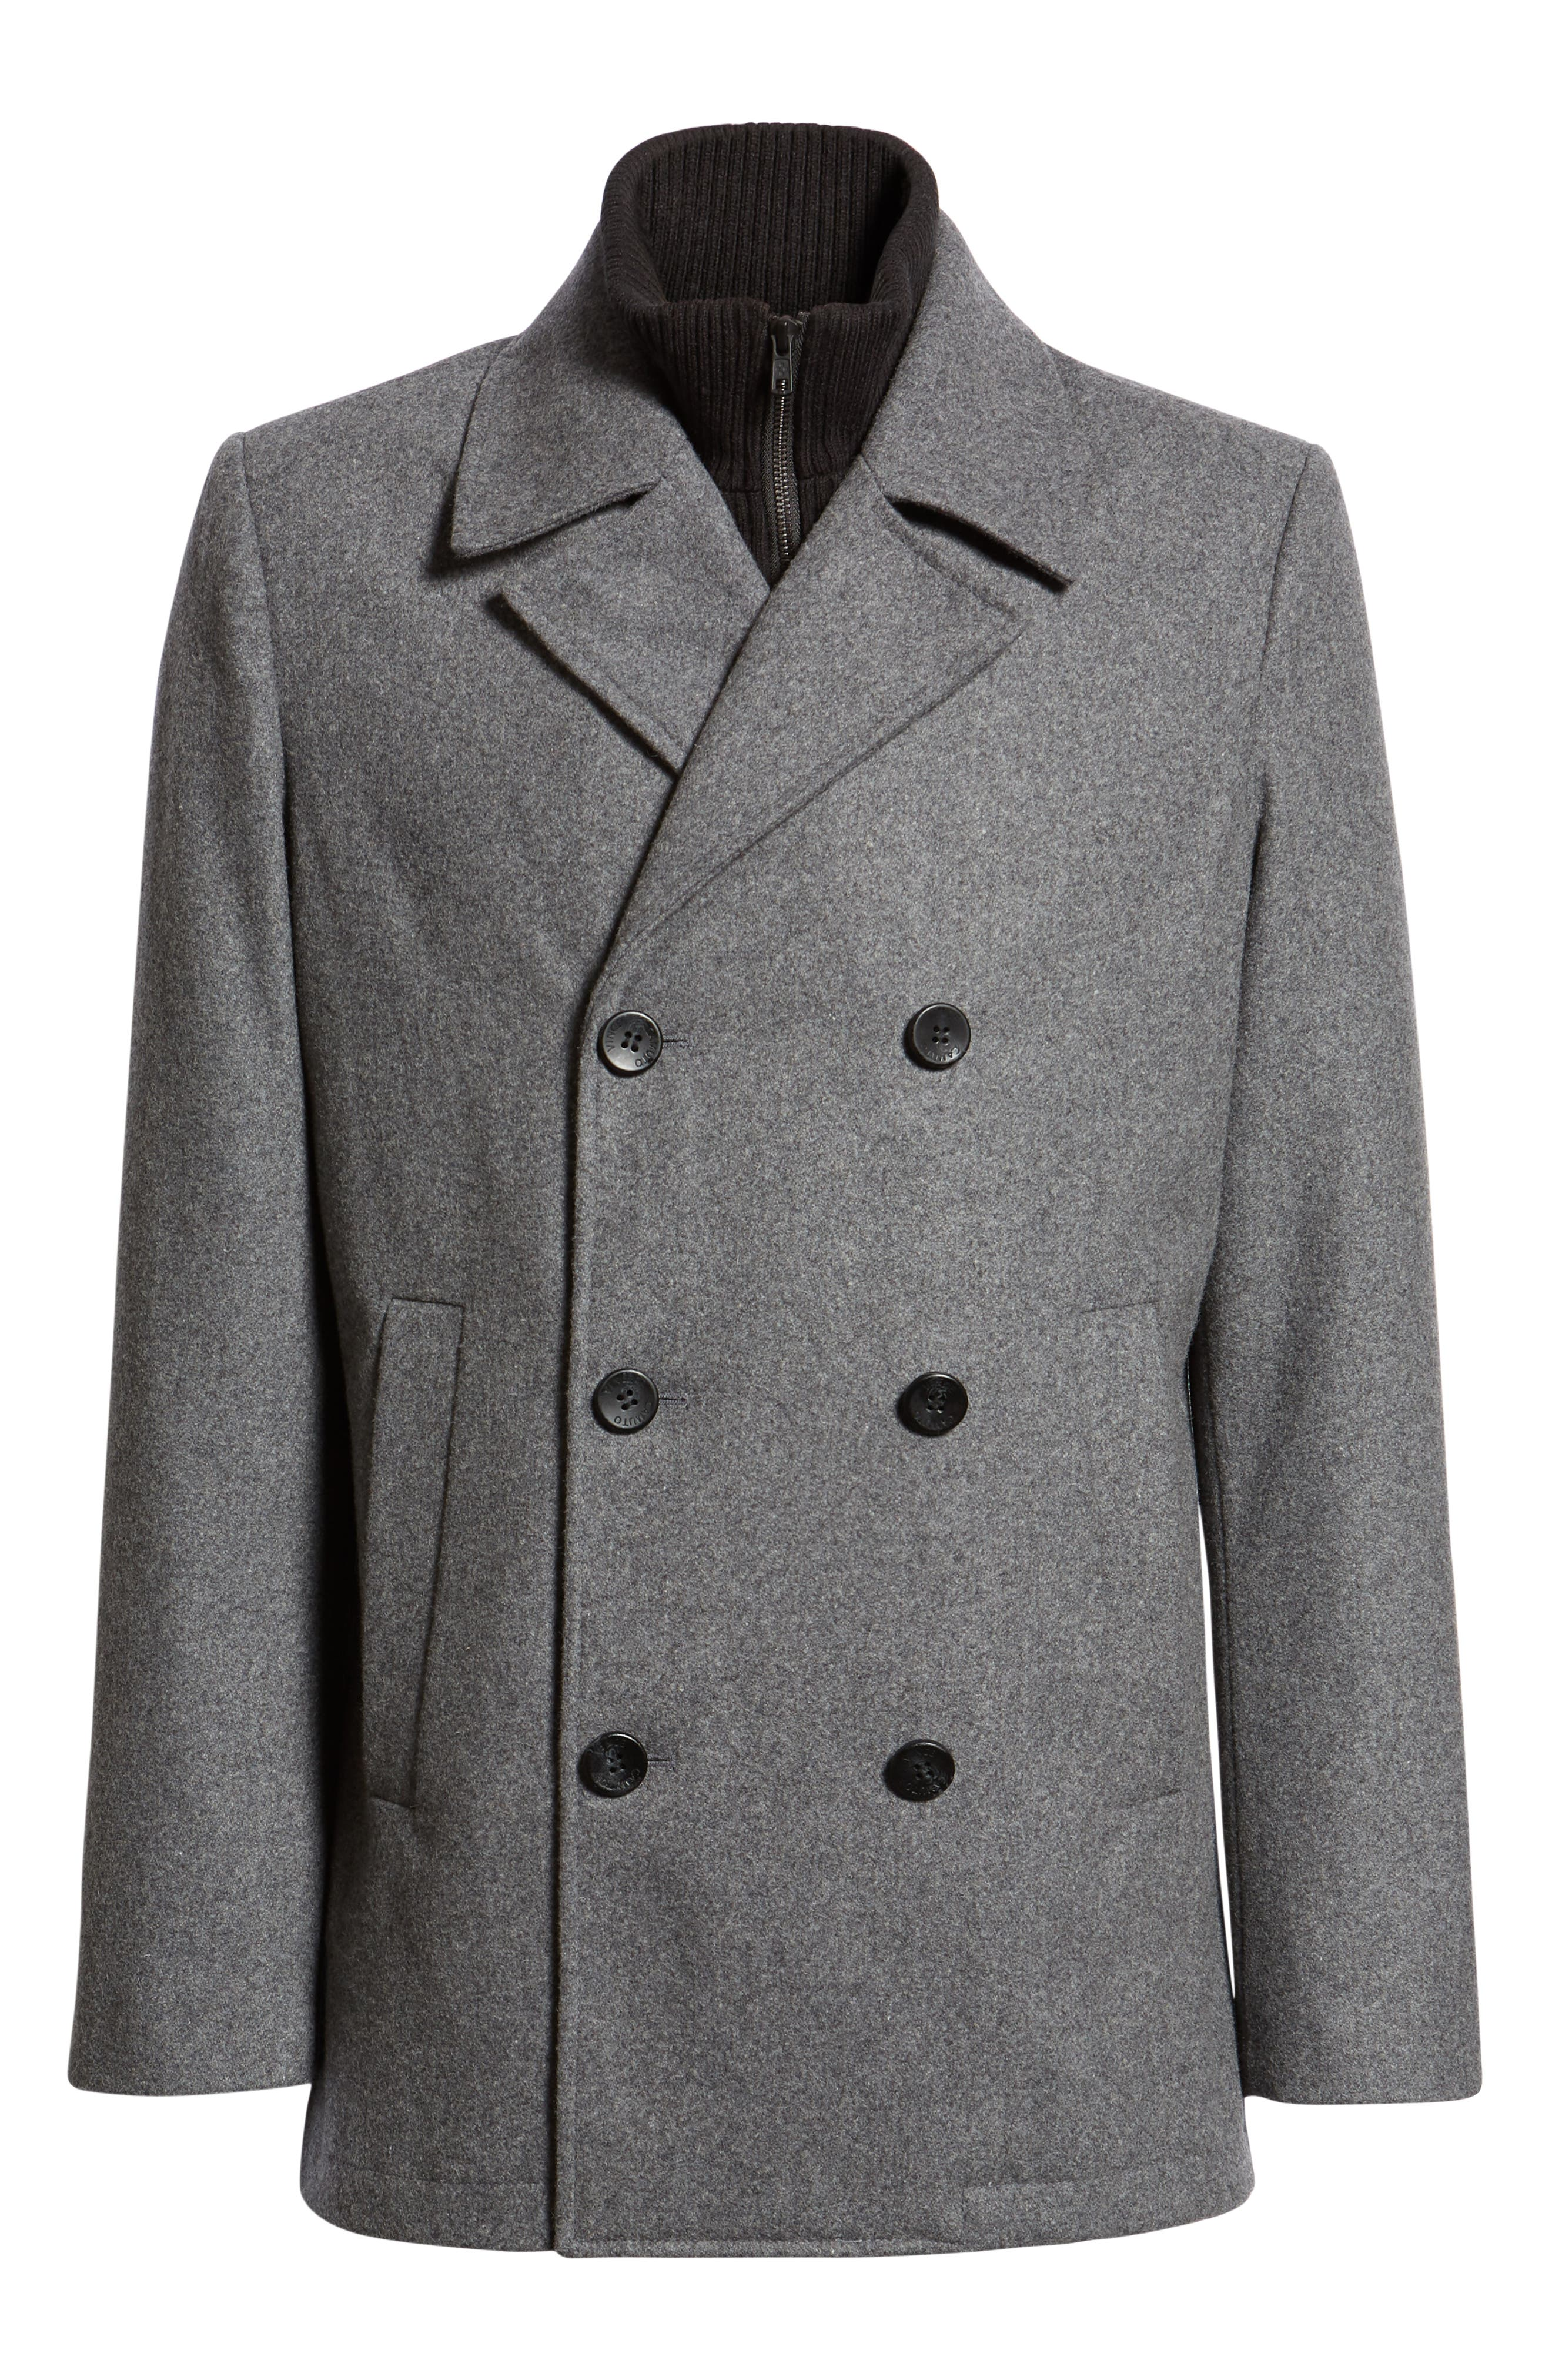 VINCE CAMUTO, Dock Peacoat, Alternate thumbnail 6, color, HEATHER GREY